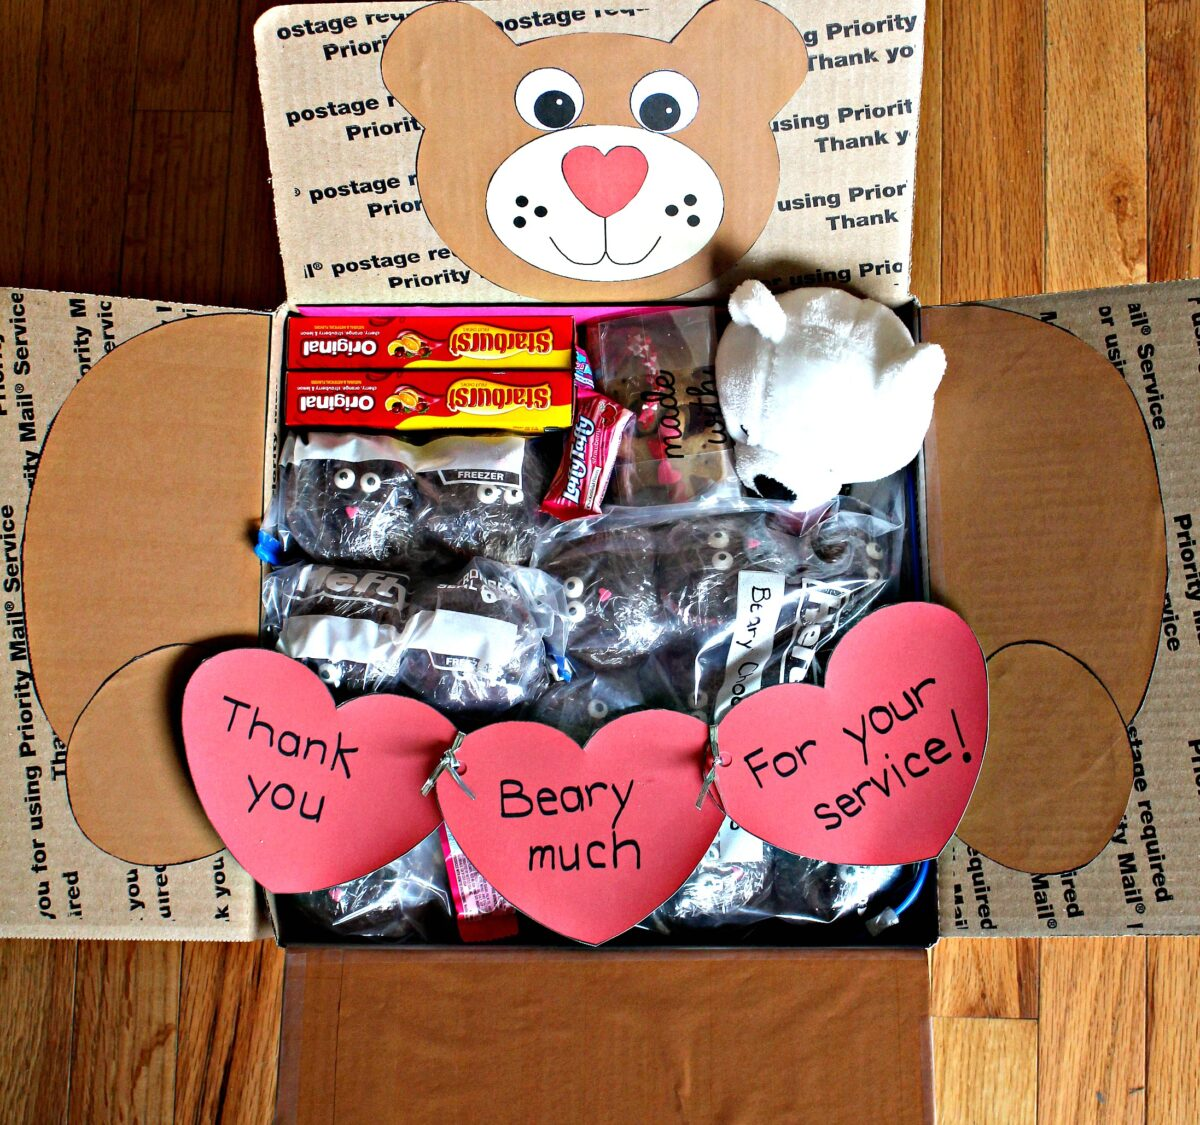 Care package decorated with a bear holding a garland of hearts.